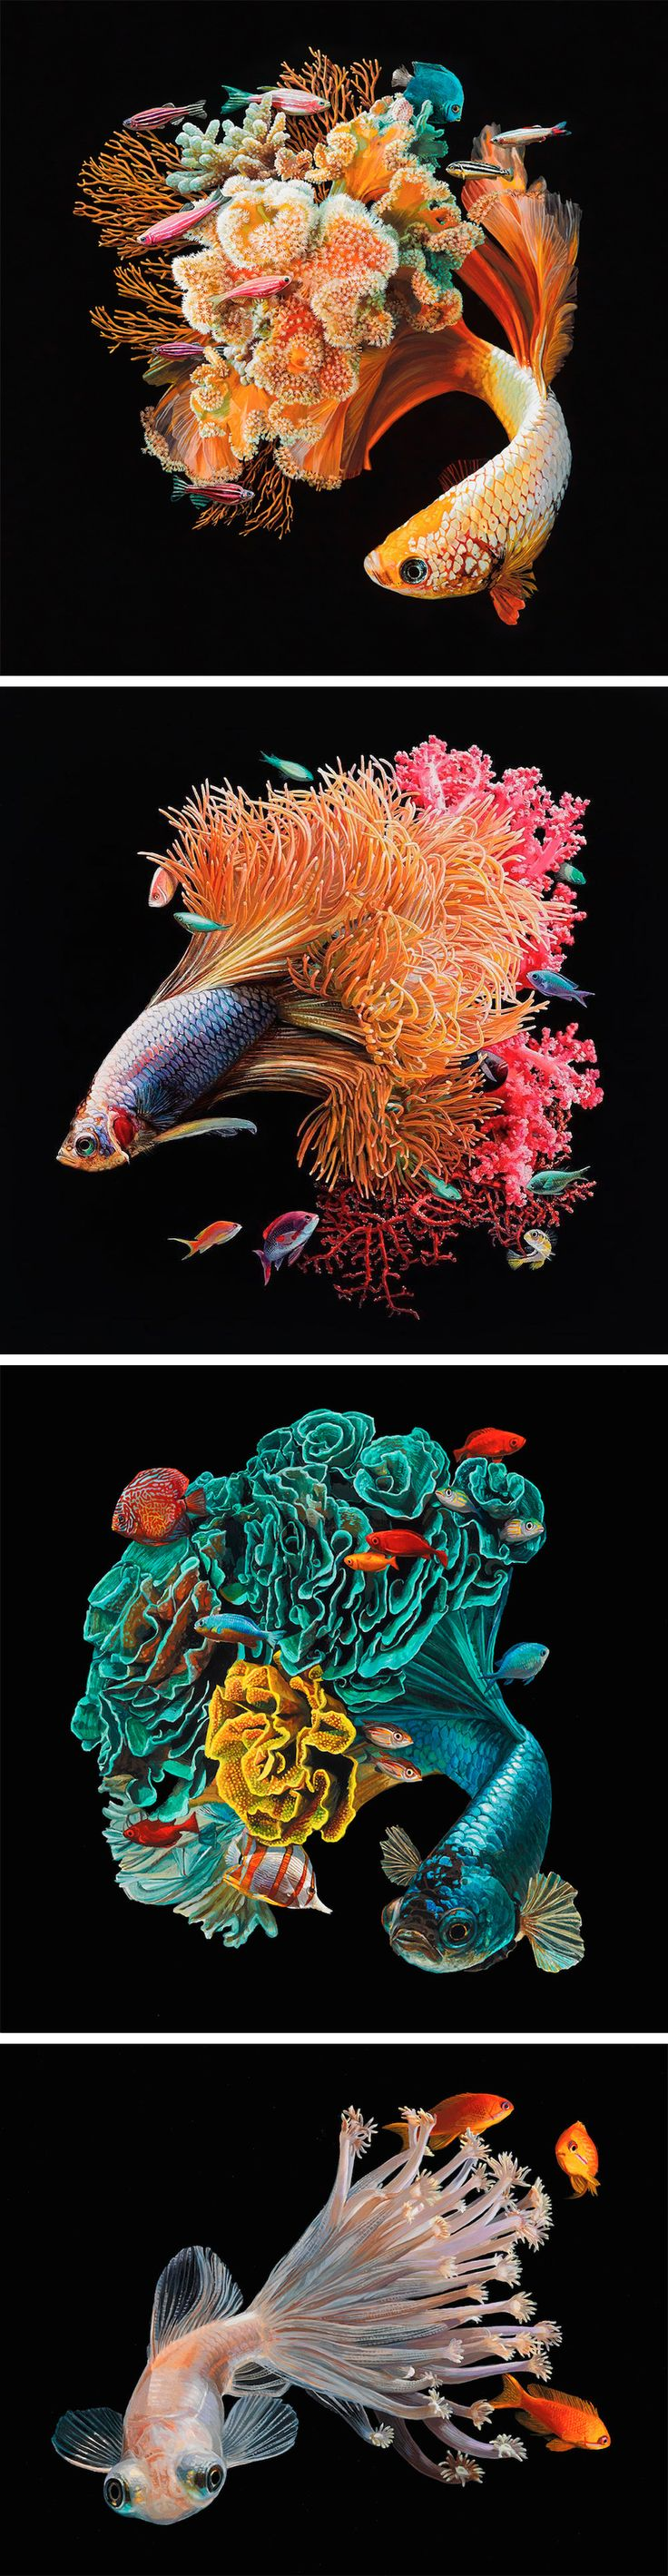 Hyperrealistic Depictions of Fish Merged With Their Coral Environments by Lisa Ericson